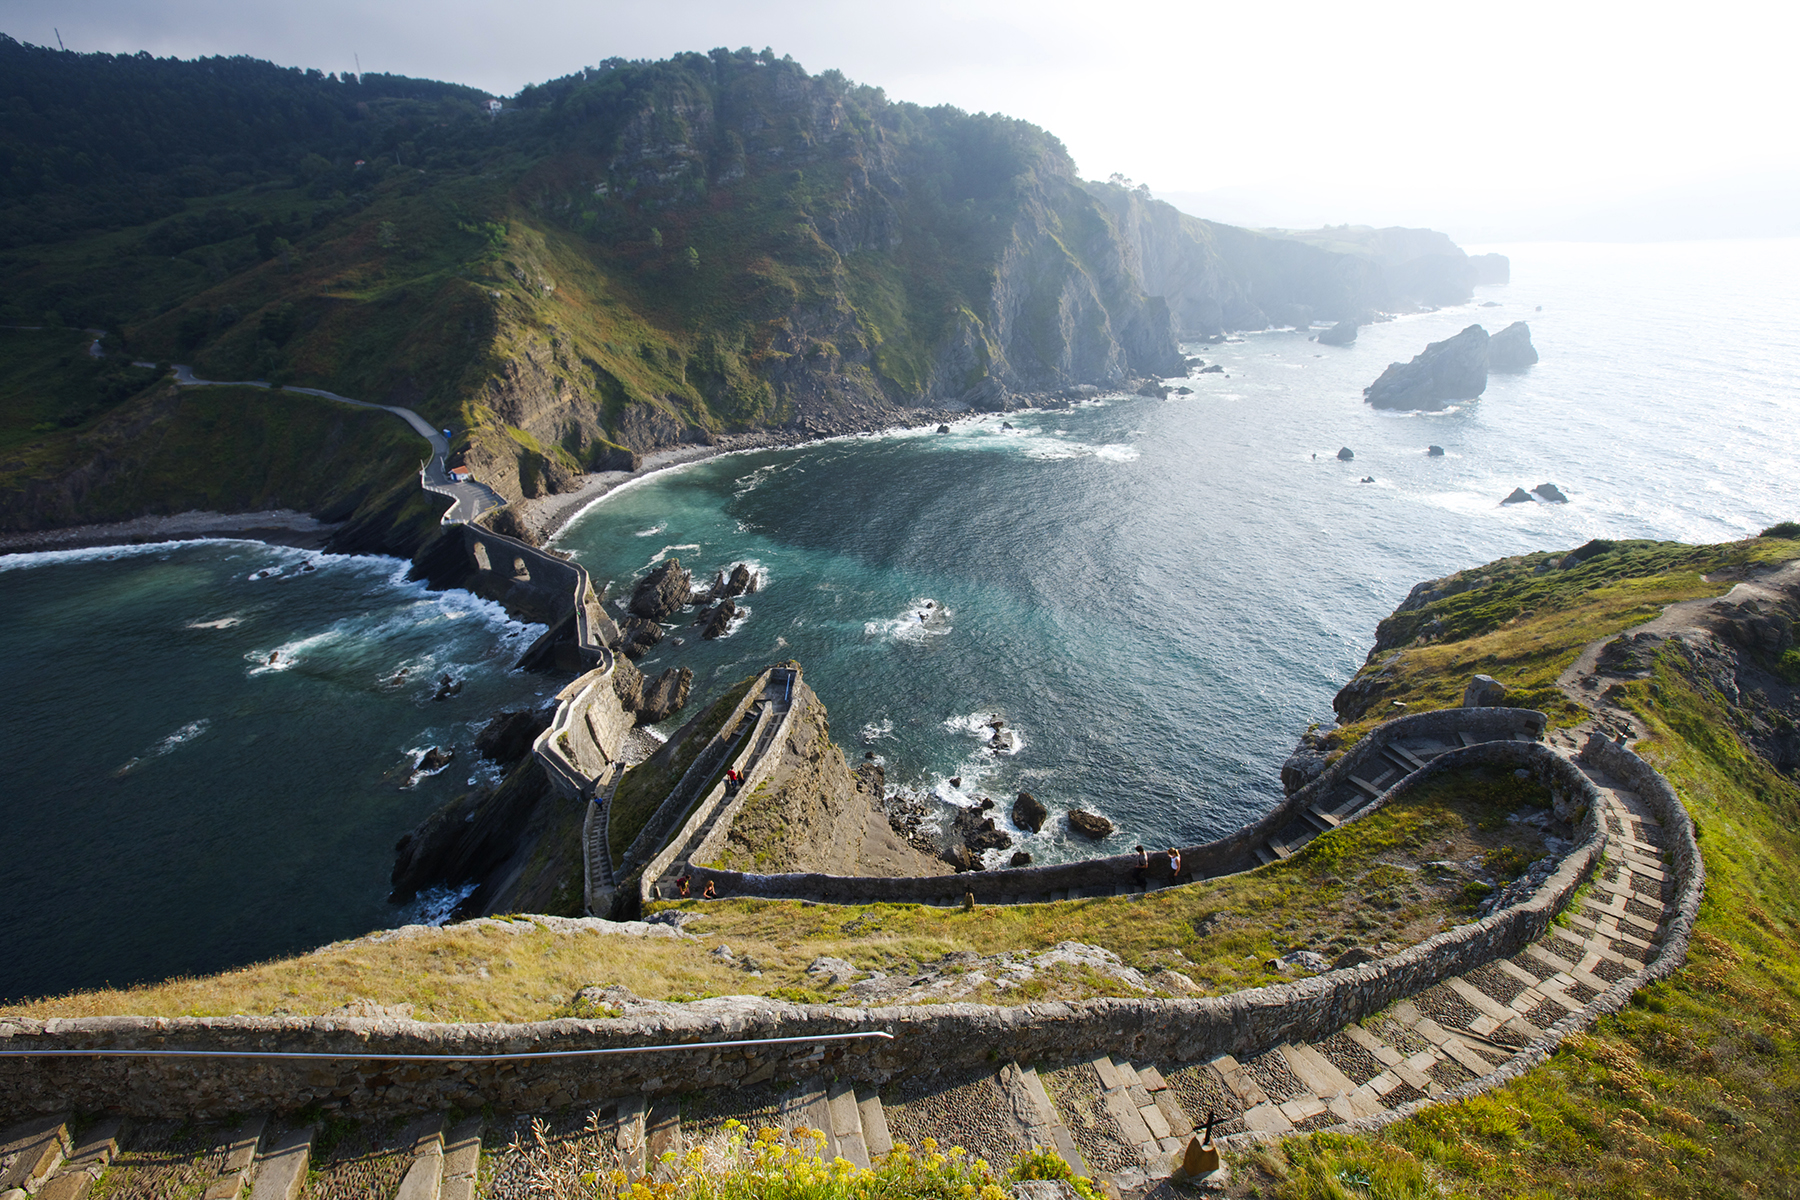 Downhill Strand, Northern Ireland; Itzurun Beach in Spain; Spain's San Juan de Gaztelugatxe in Basque Country